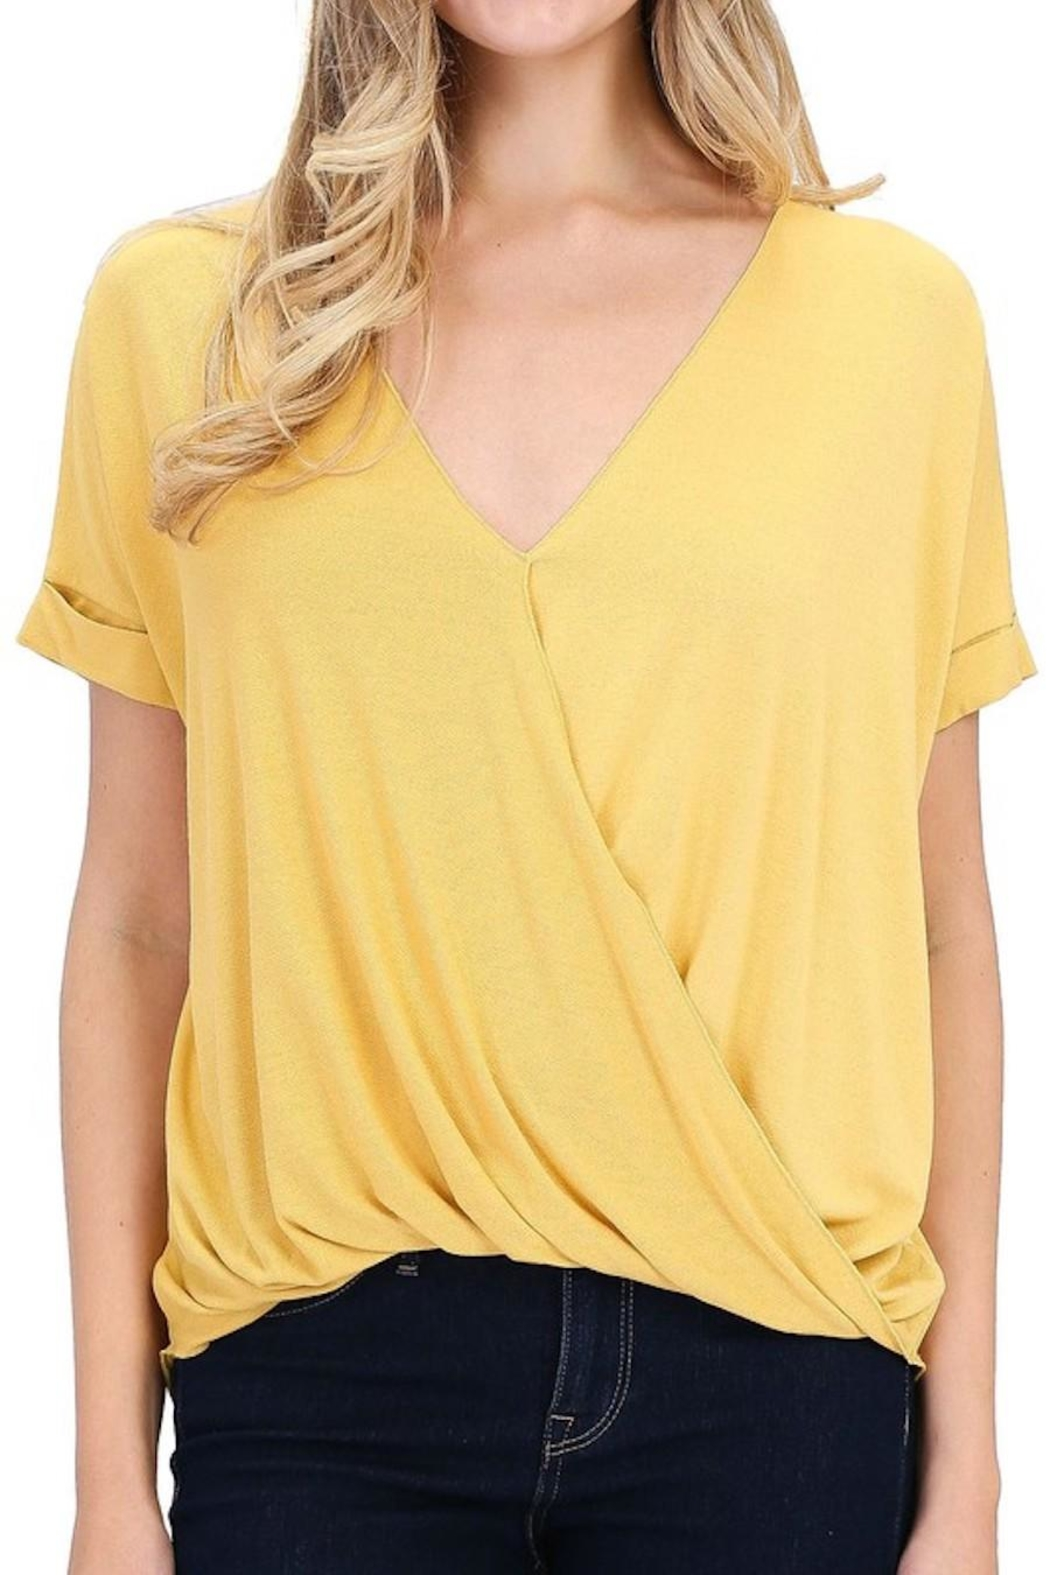 Double Zero That's-A-Wrap Mustard Top - Front Cropped Image